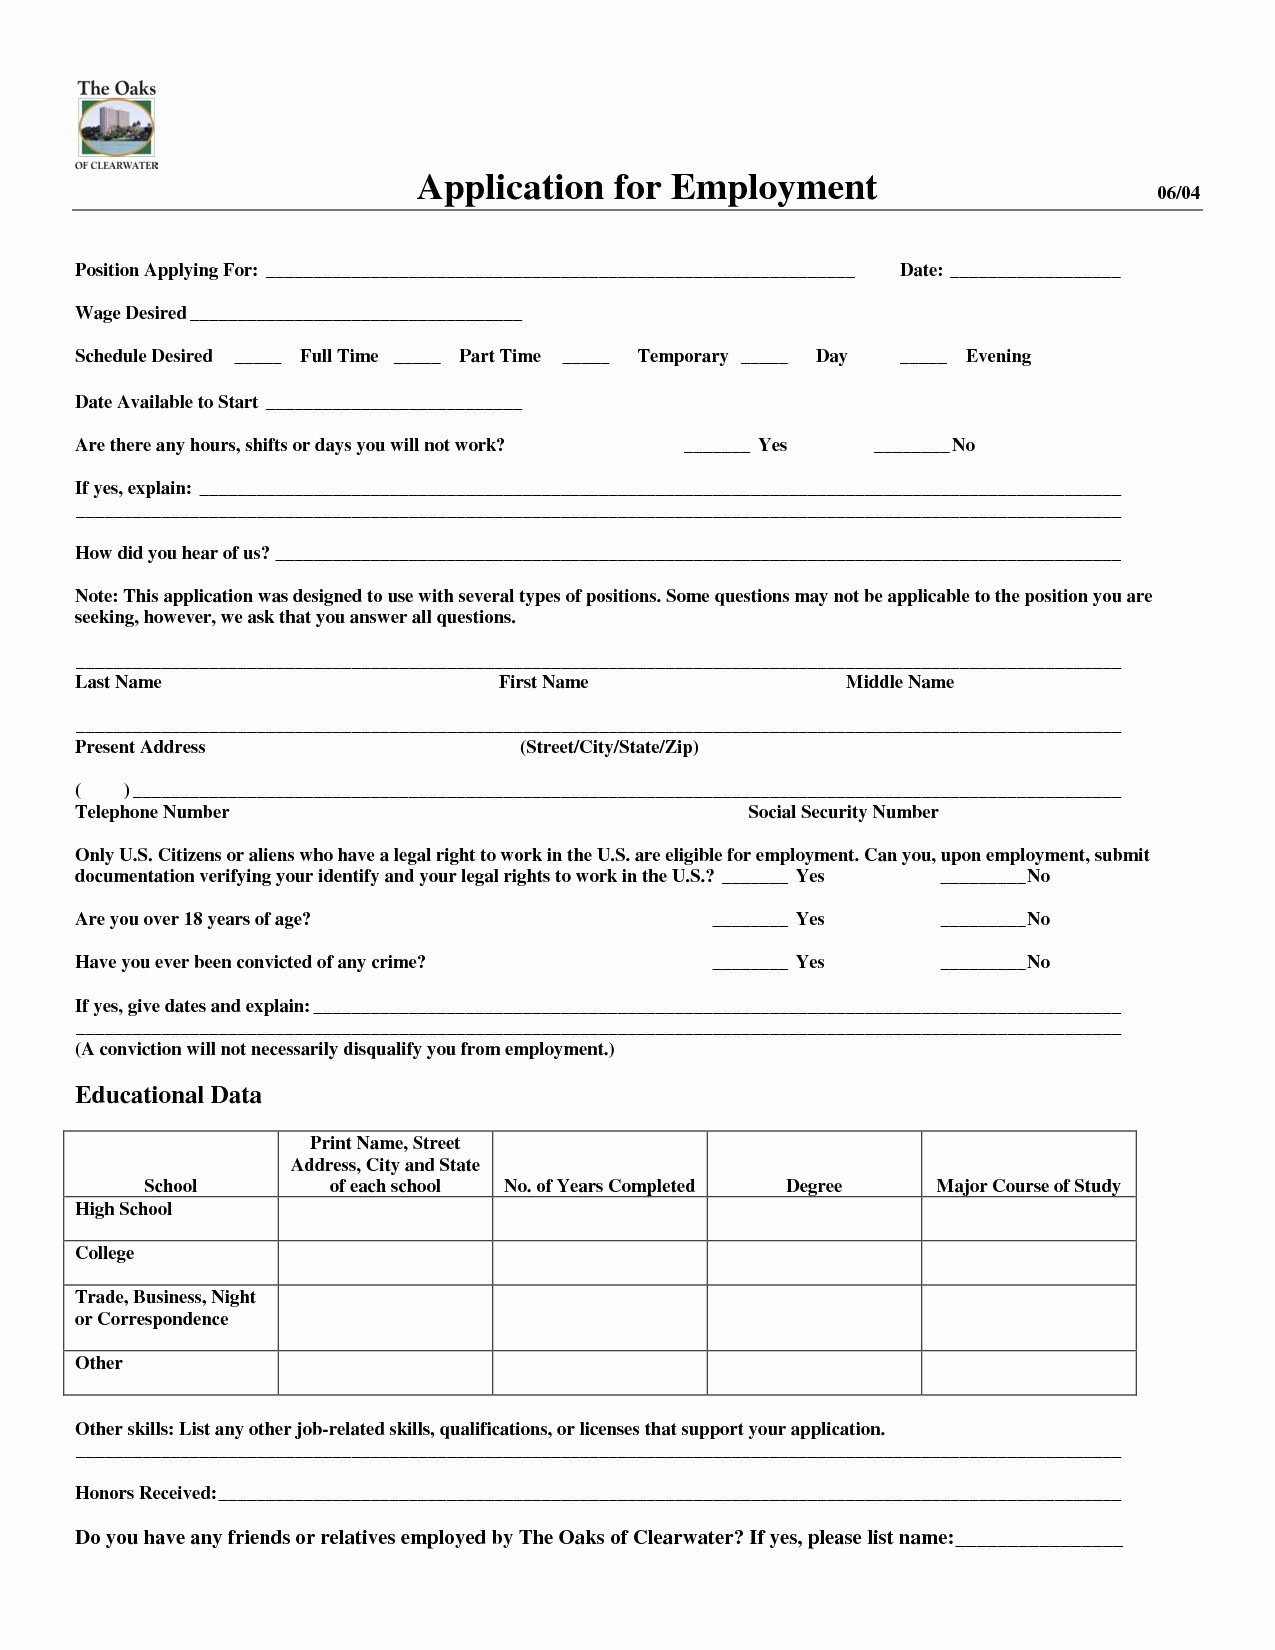 Free Counseling forms Templates Availablearticlesfo